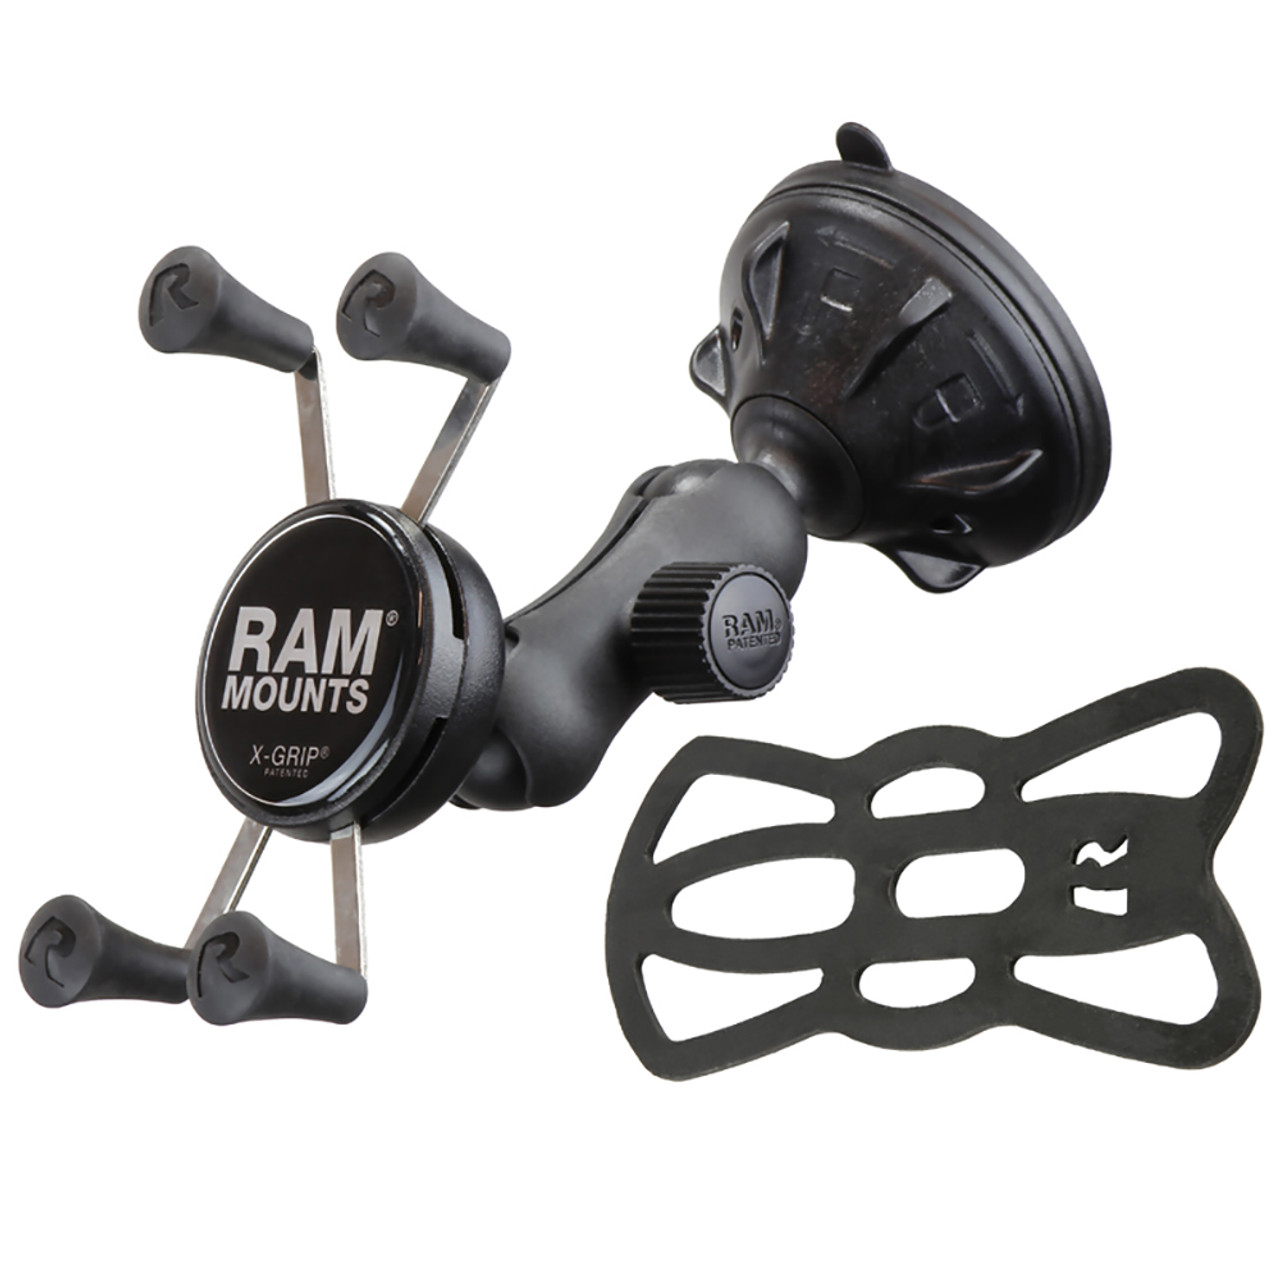 RAM Mount X-Grip Composite Twist Lock Suction Cup Mount [RAP-B-166-2-UN7U]